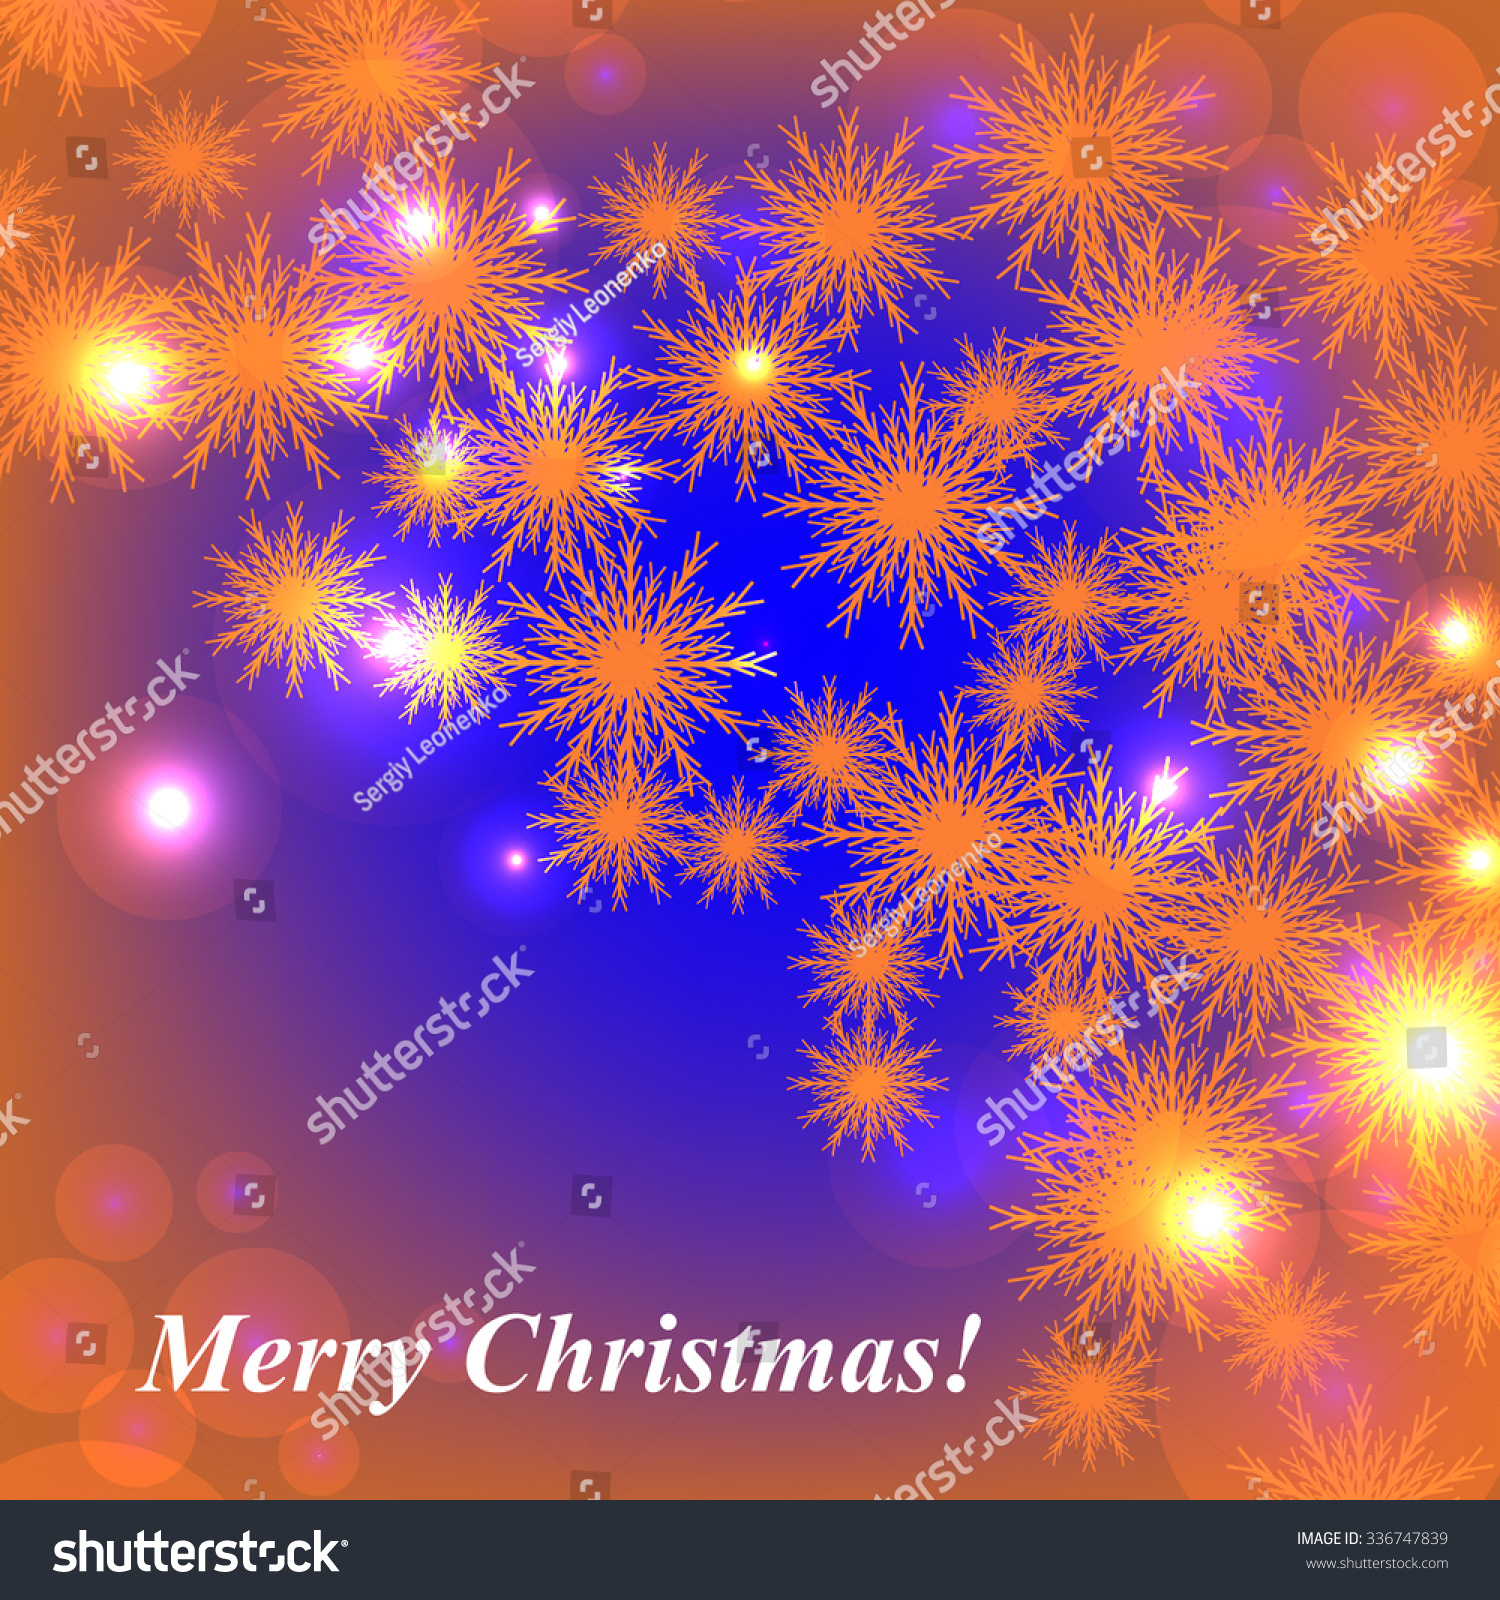 Christmas Glowing Lights Merry Christmas Happy Stock Vector